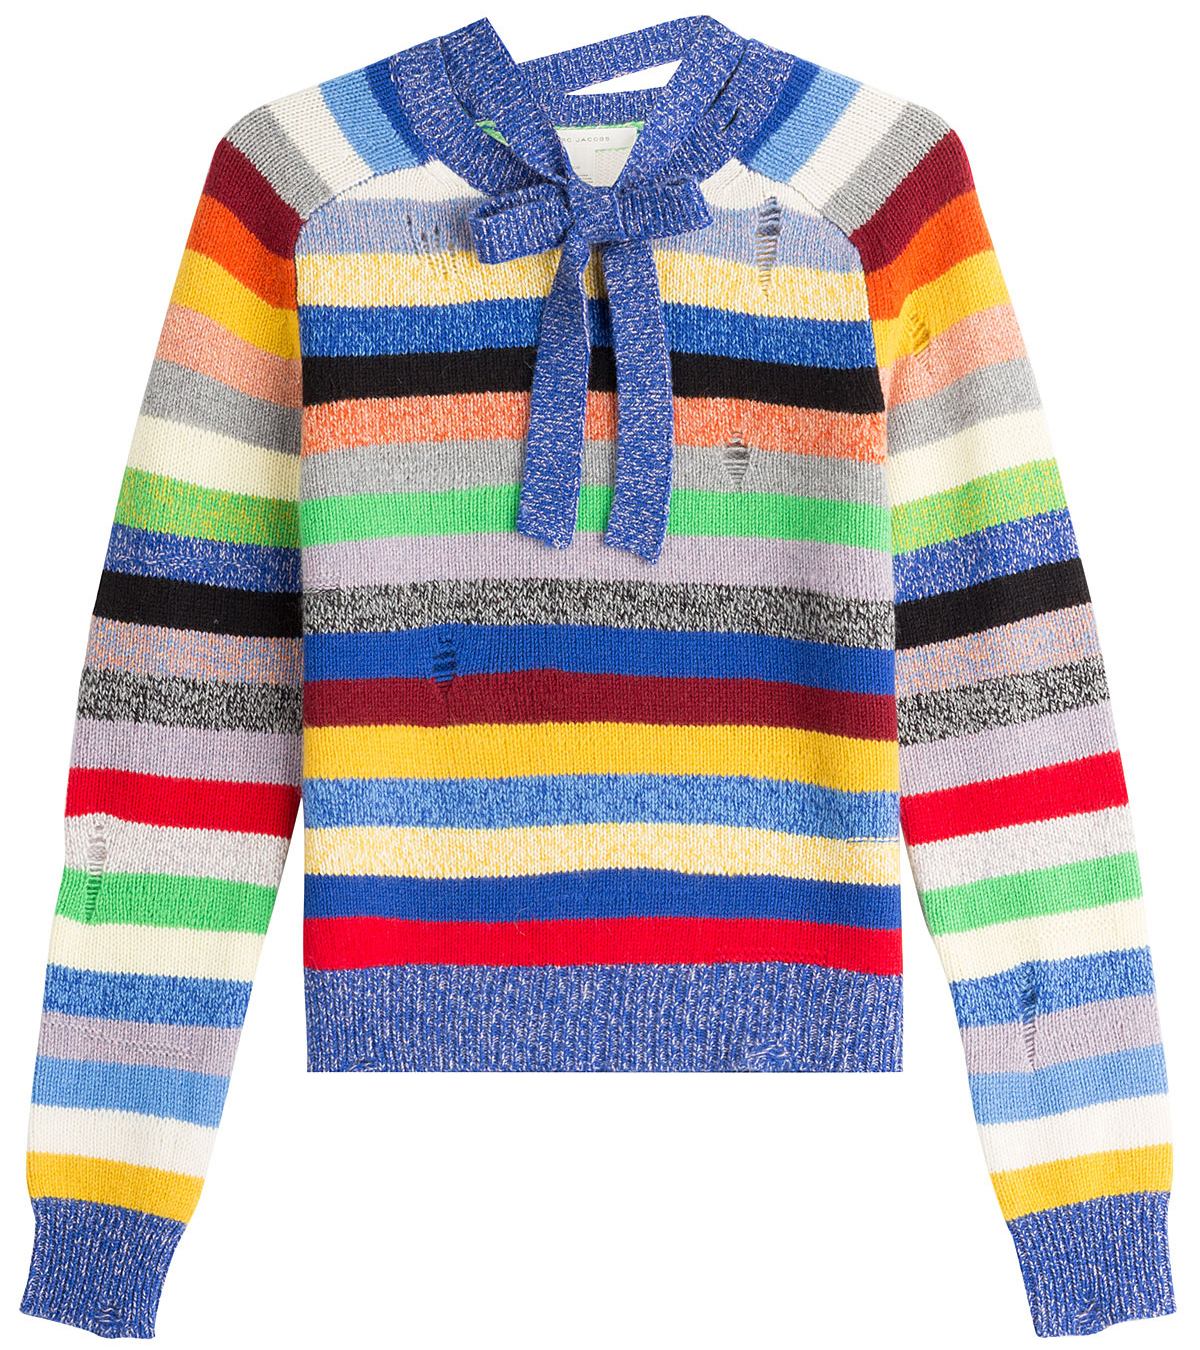 March Jacobs Stripe Cashmere Crewneck Sweater